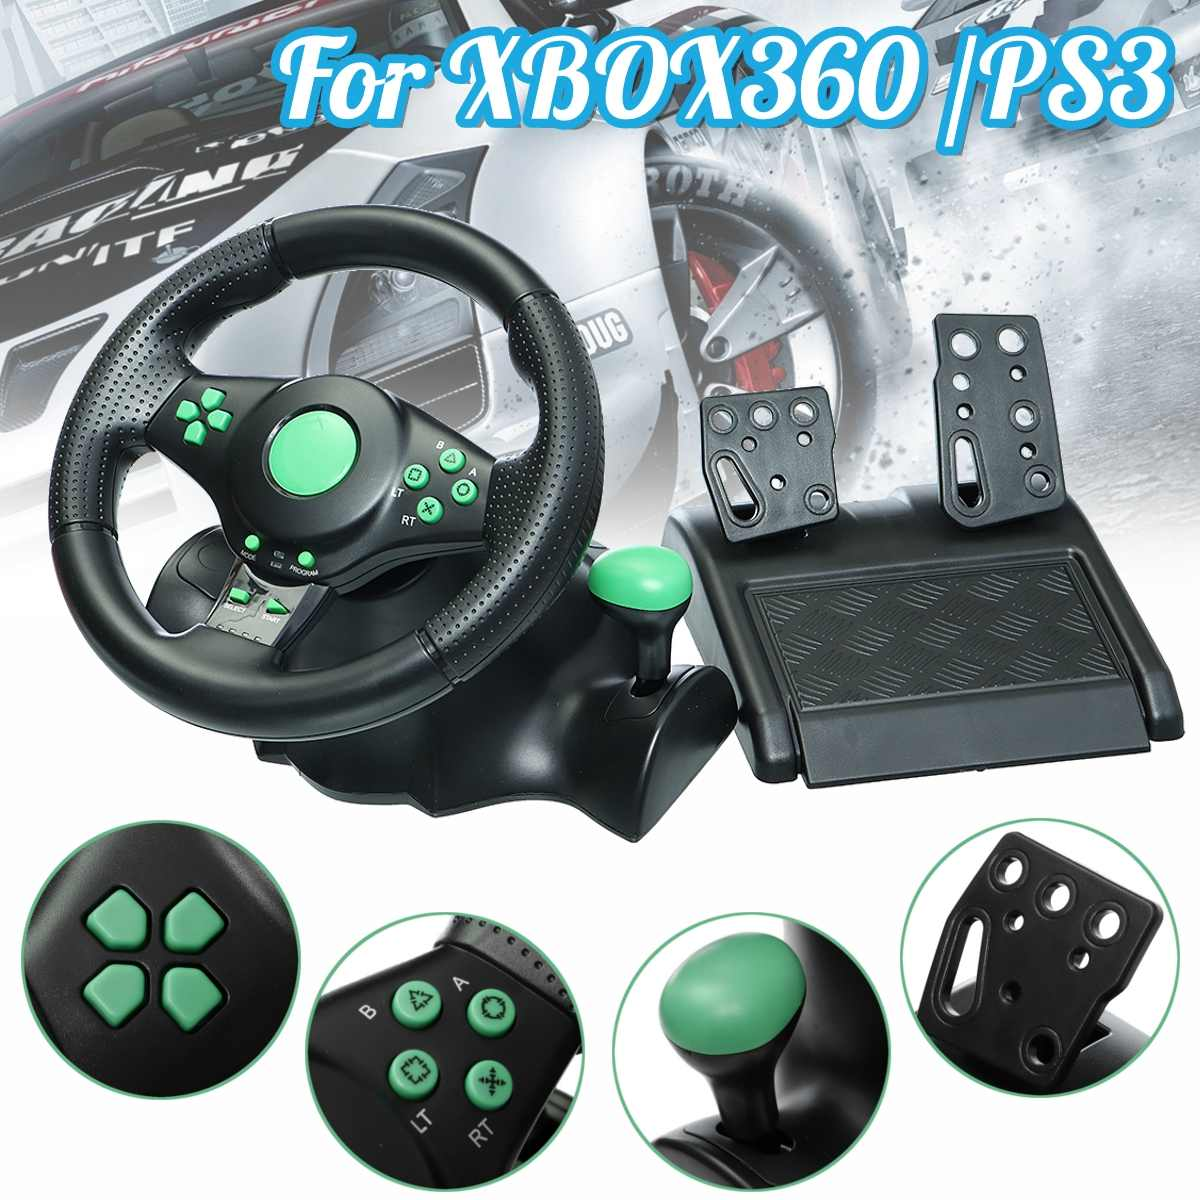 Gaming Vibration Racing Steering Wheel and Pedals For XBOX360 / For PS3 / For PS2 / PCGaming Vibration Racing Steering Wheel and Pedals For XBOX360 / For PS3 / For PS2 / PC